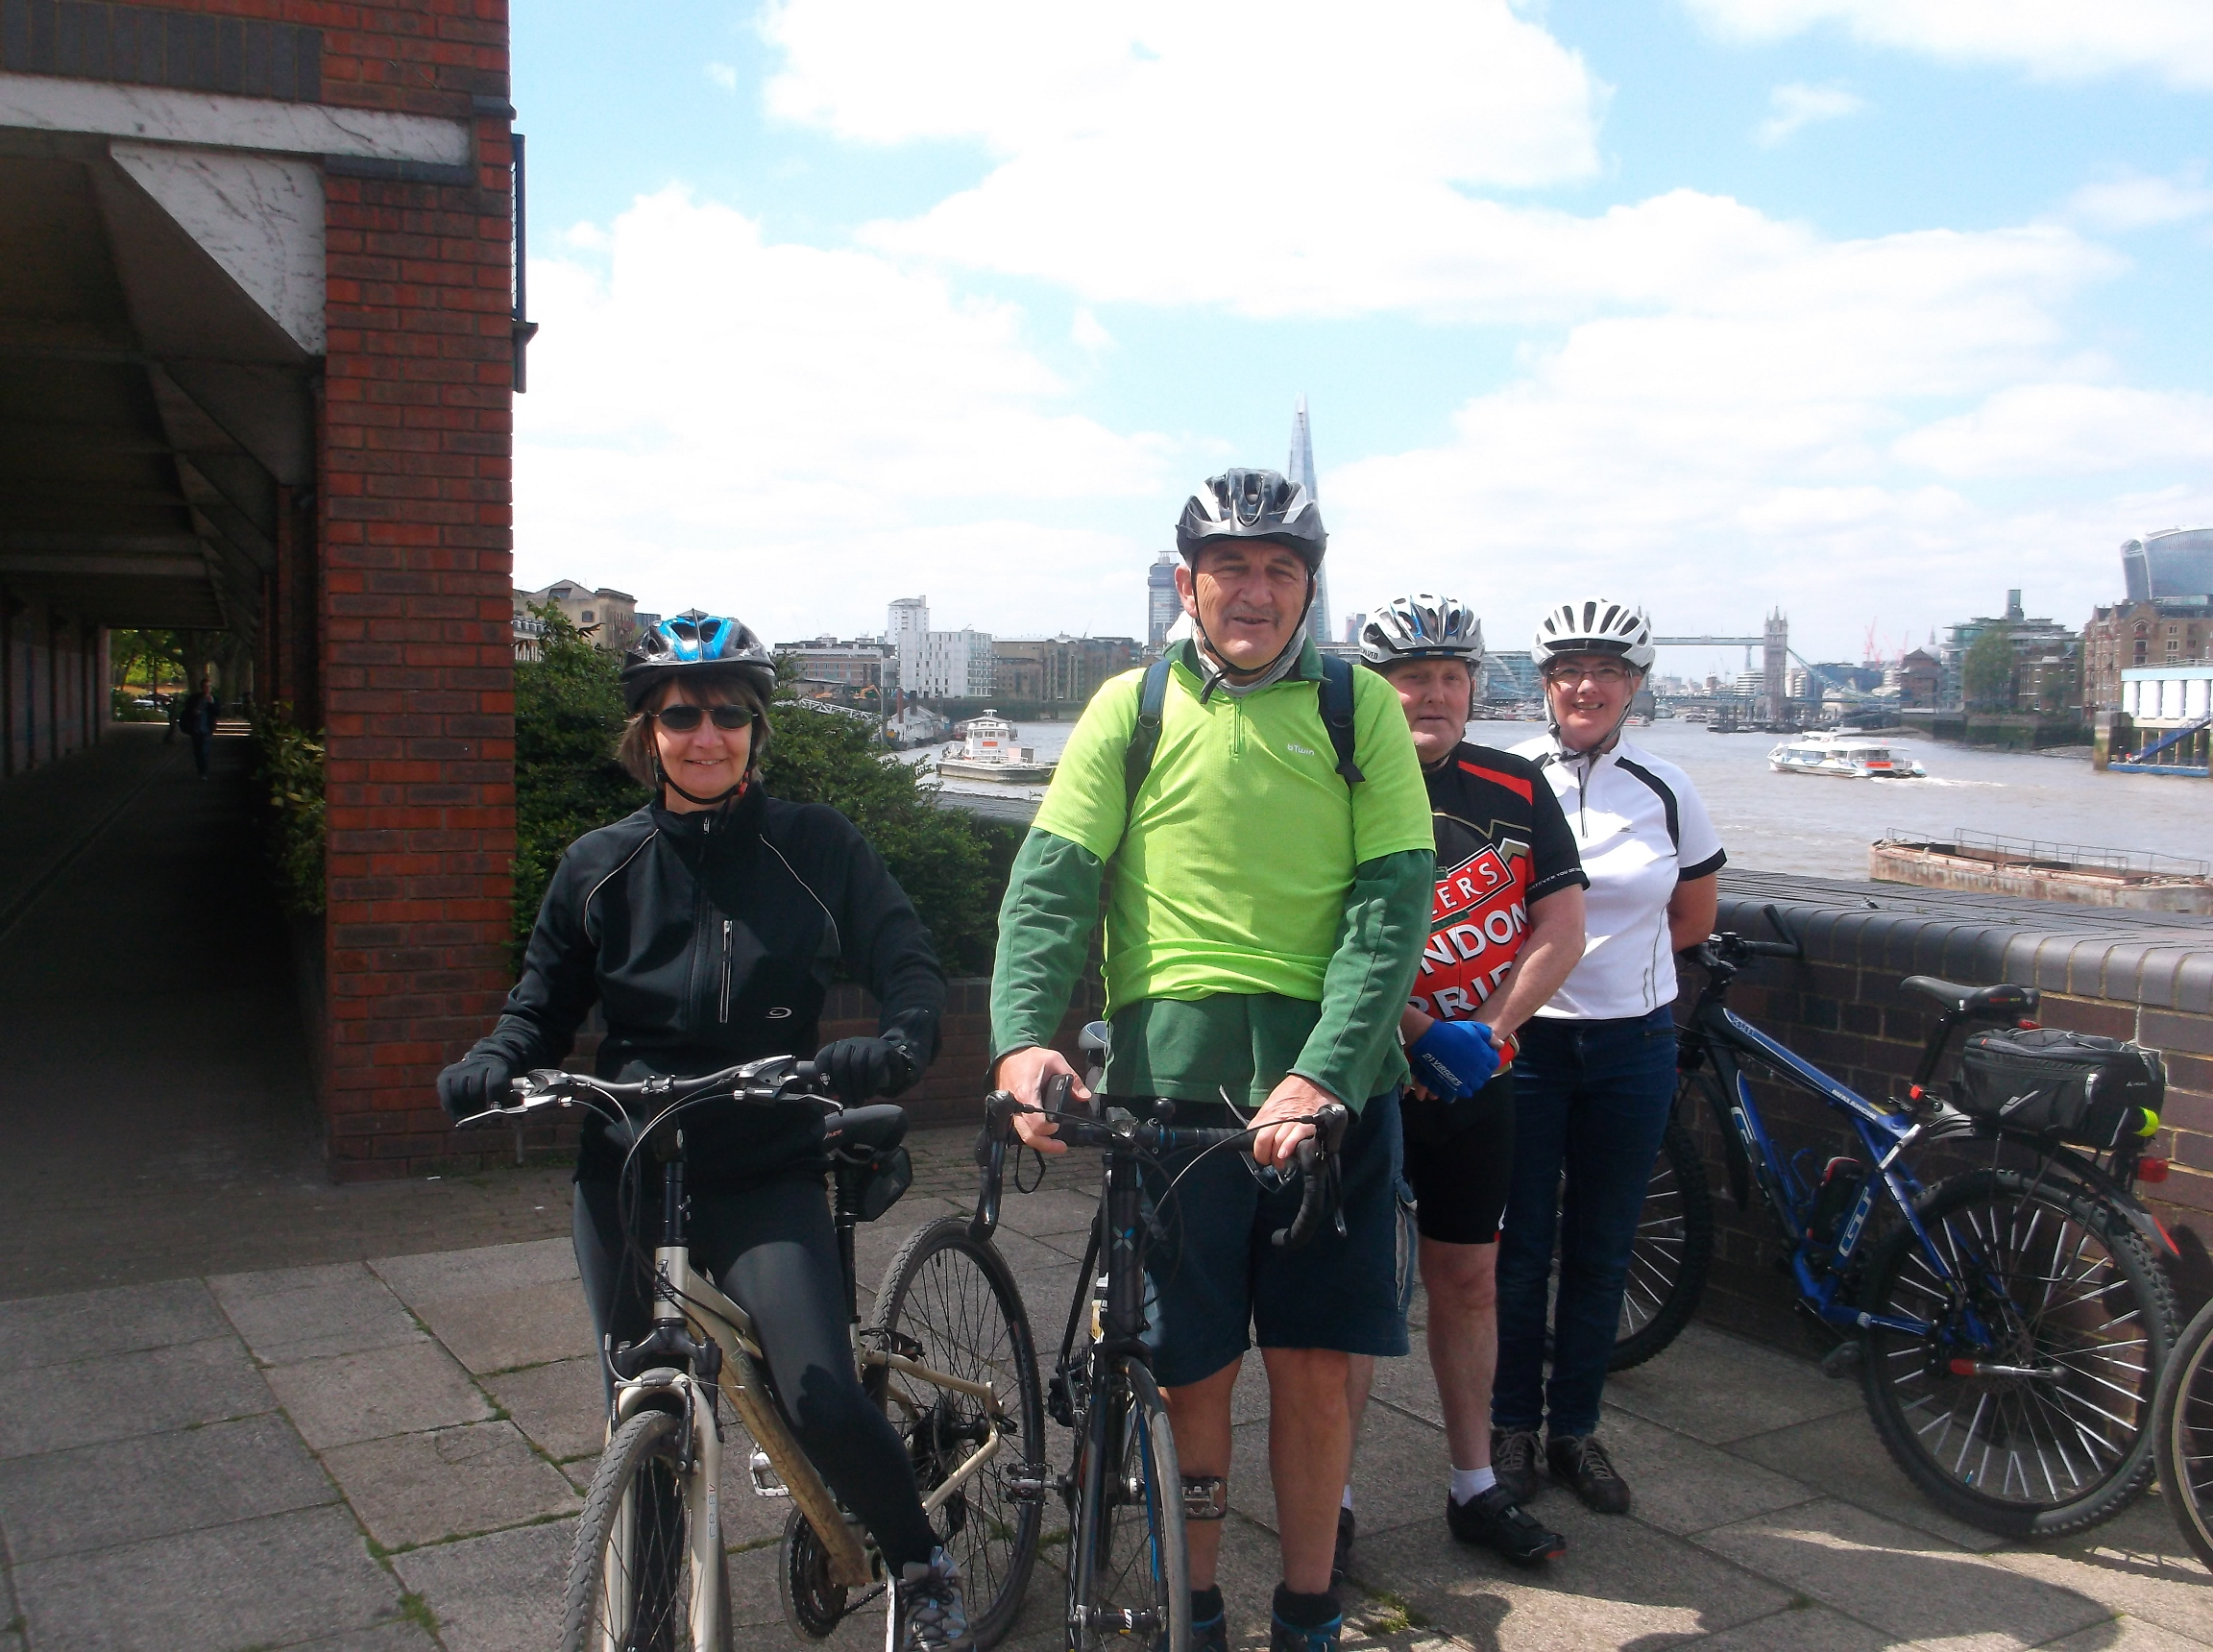 London Riverbank Recreation Ride Report